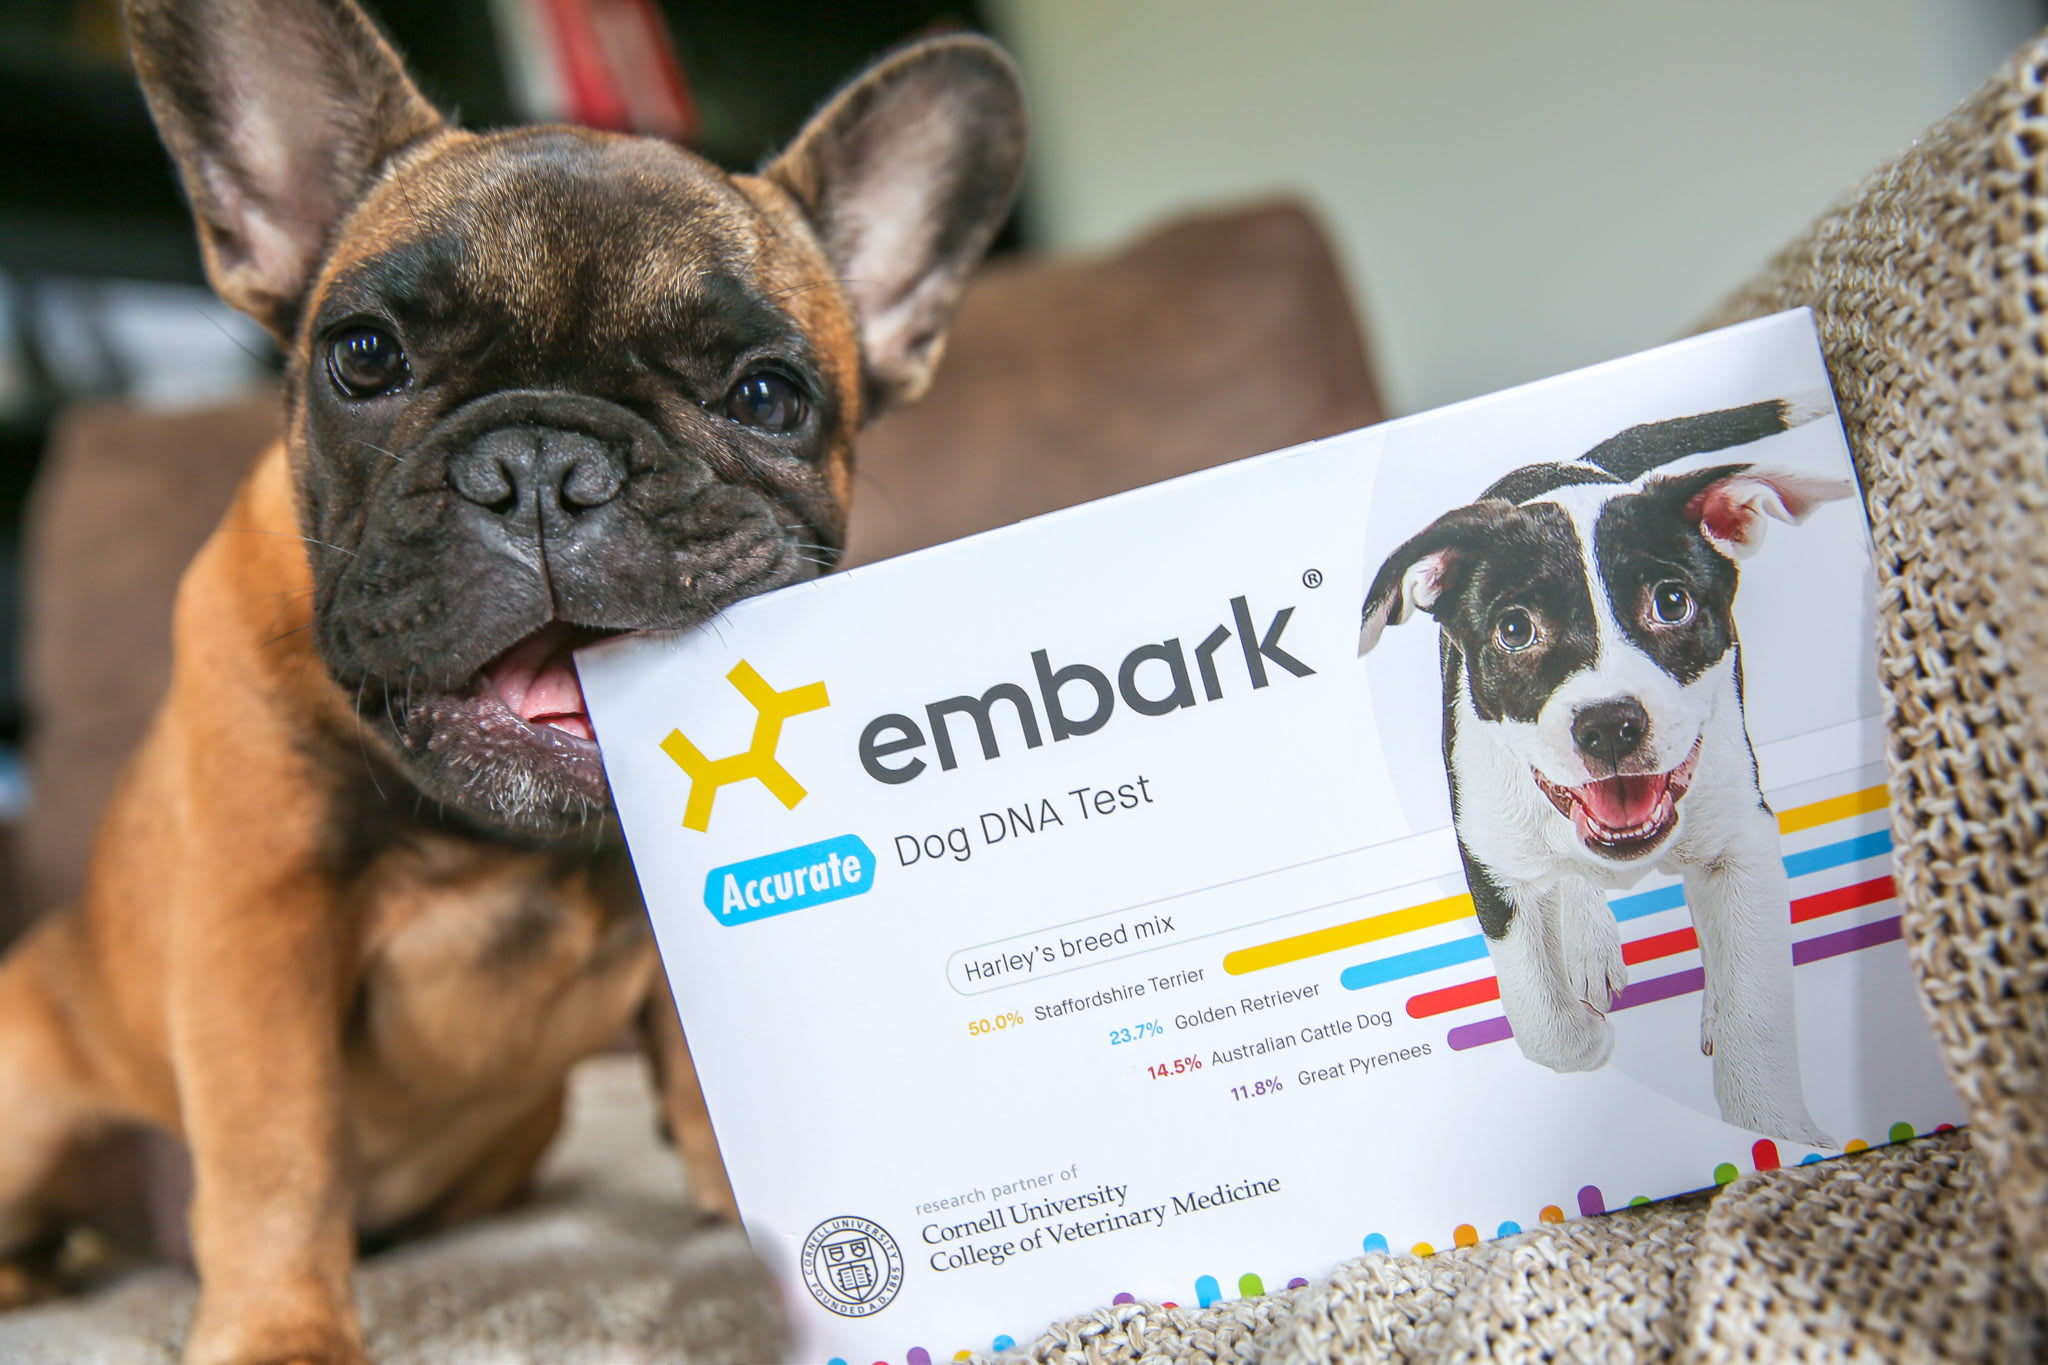 embark dog with DNA test